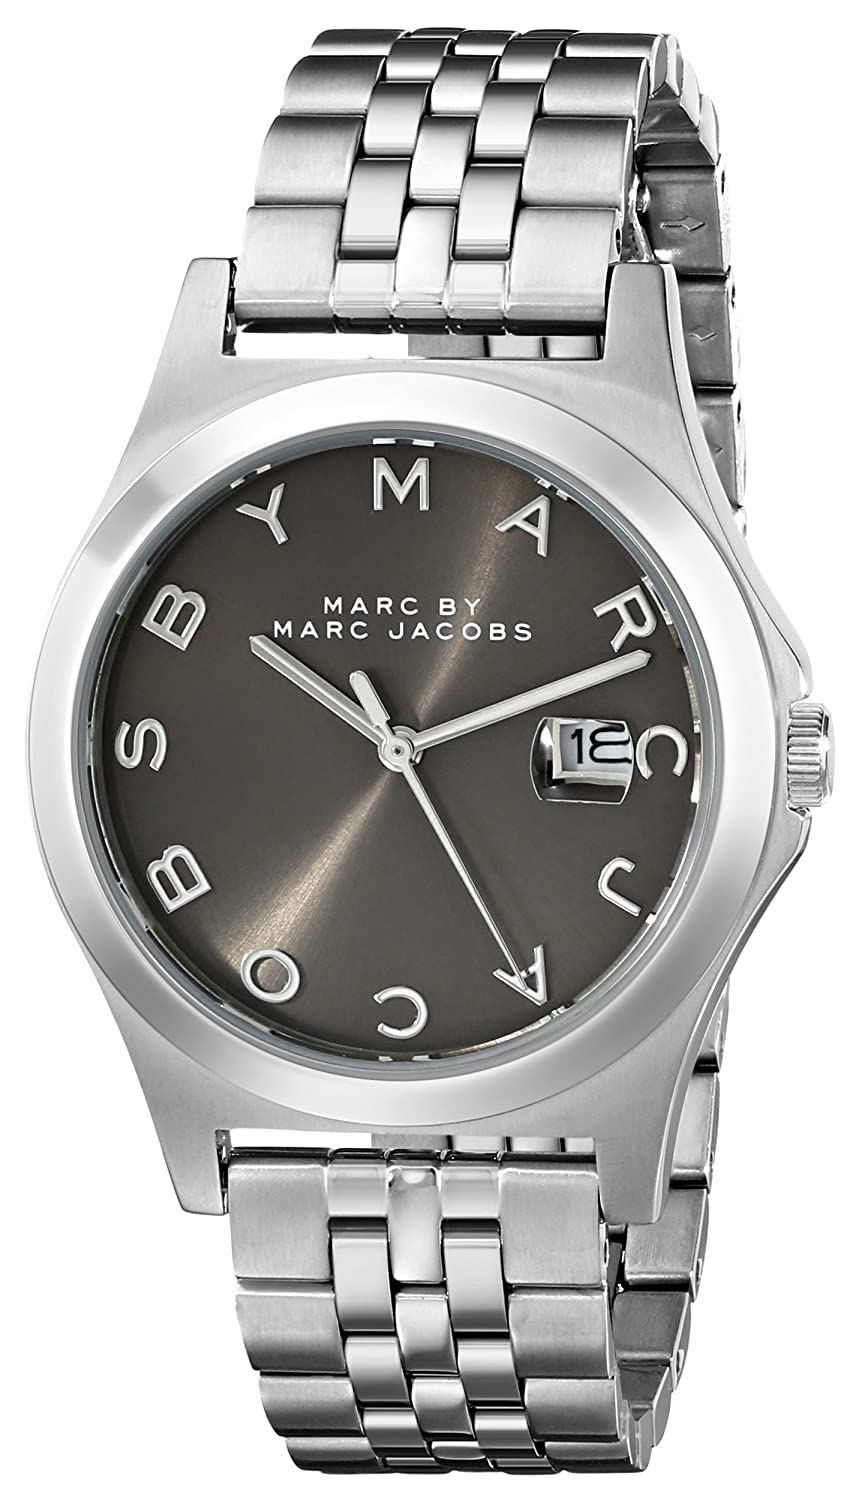 6cfd69f1ac737 Amazon.com: Marc by Marc Jacobs Women's MBM3348 Slim Stainless Steel Watch  with Link Bracelet: Watches